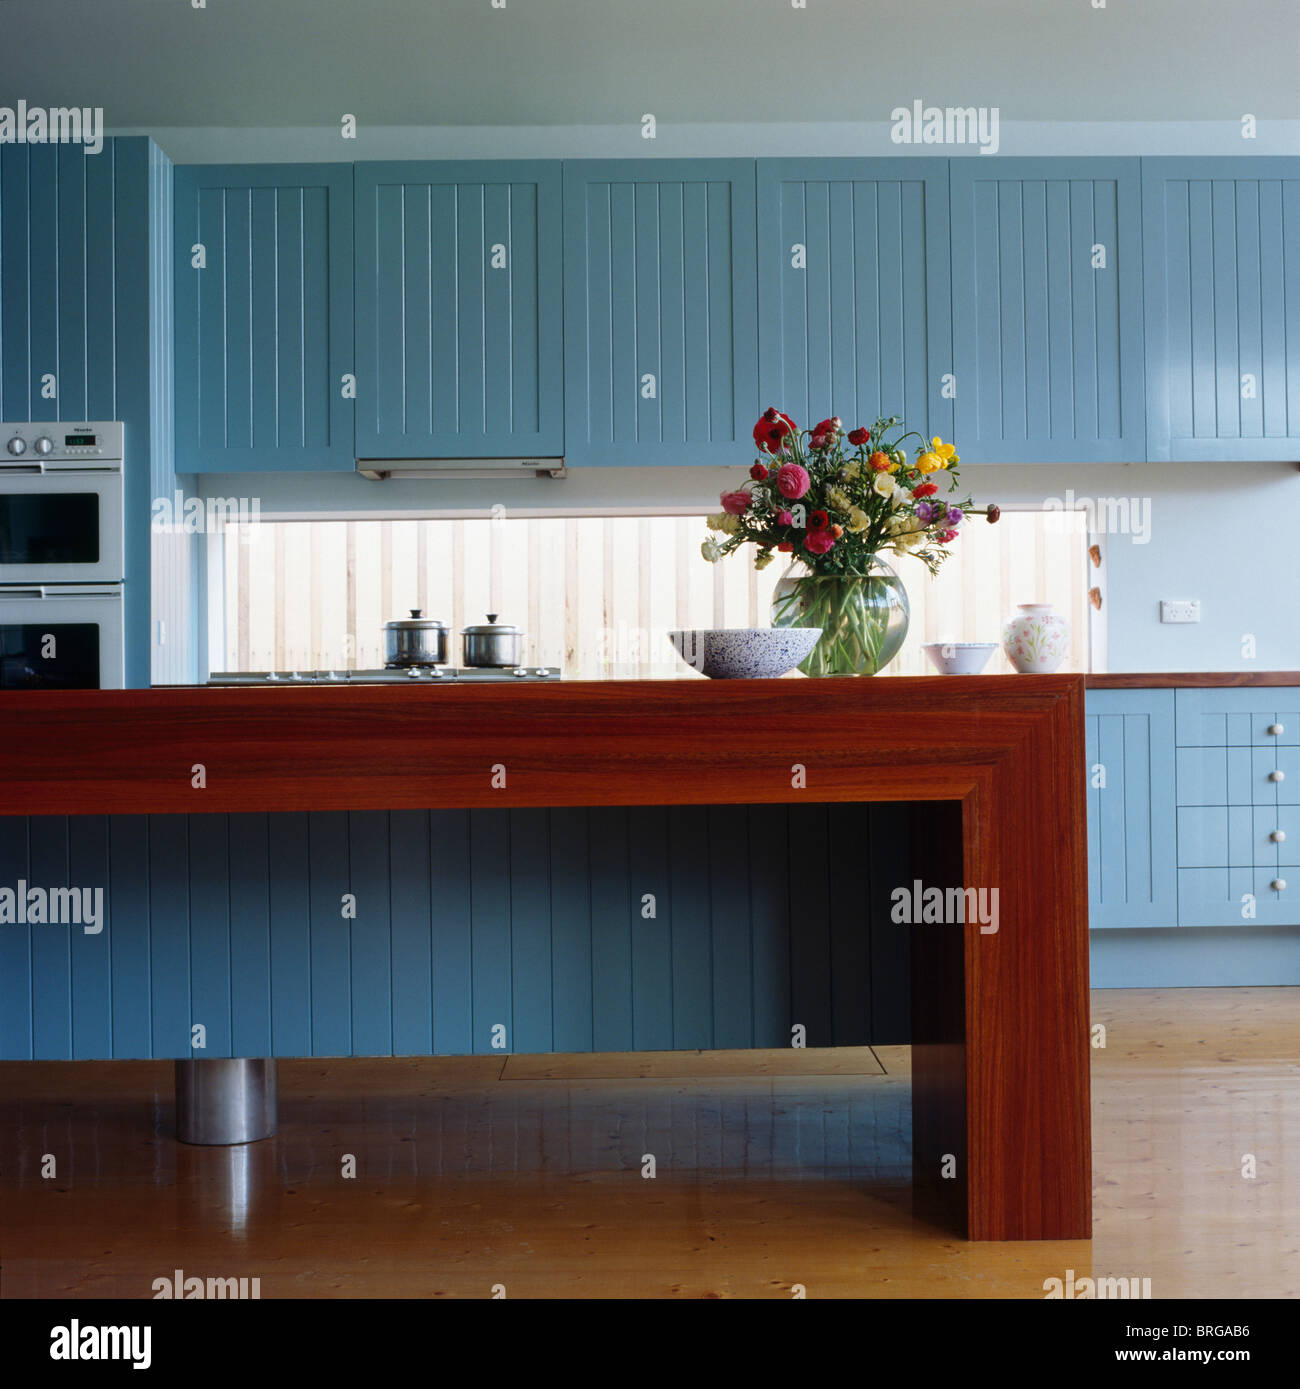 Vase of colorful flowers on wood-finished unit in modern kitchen ...